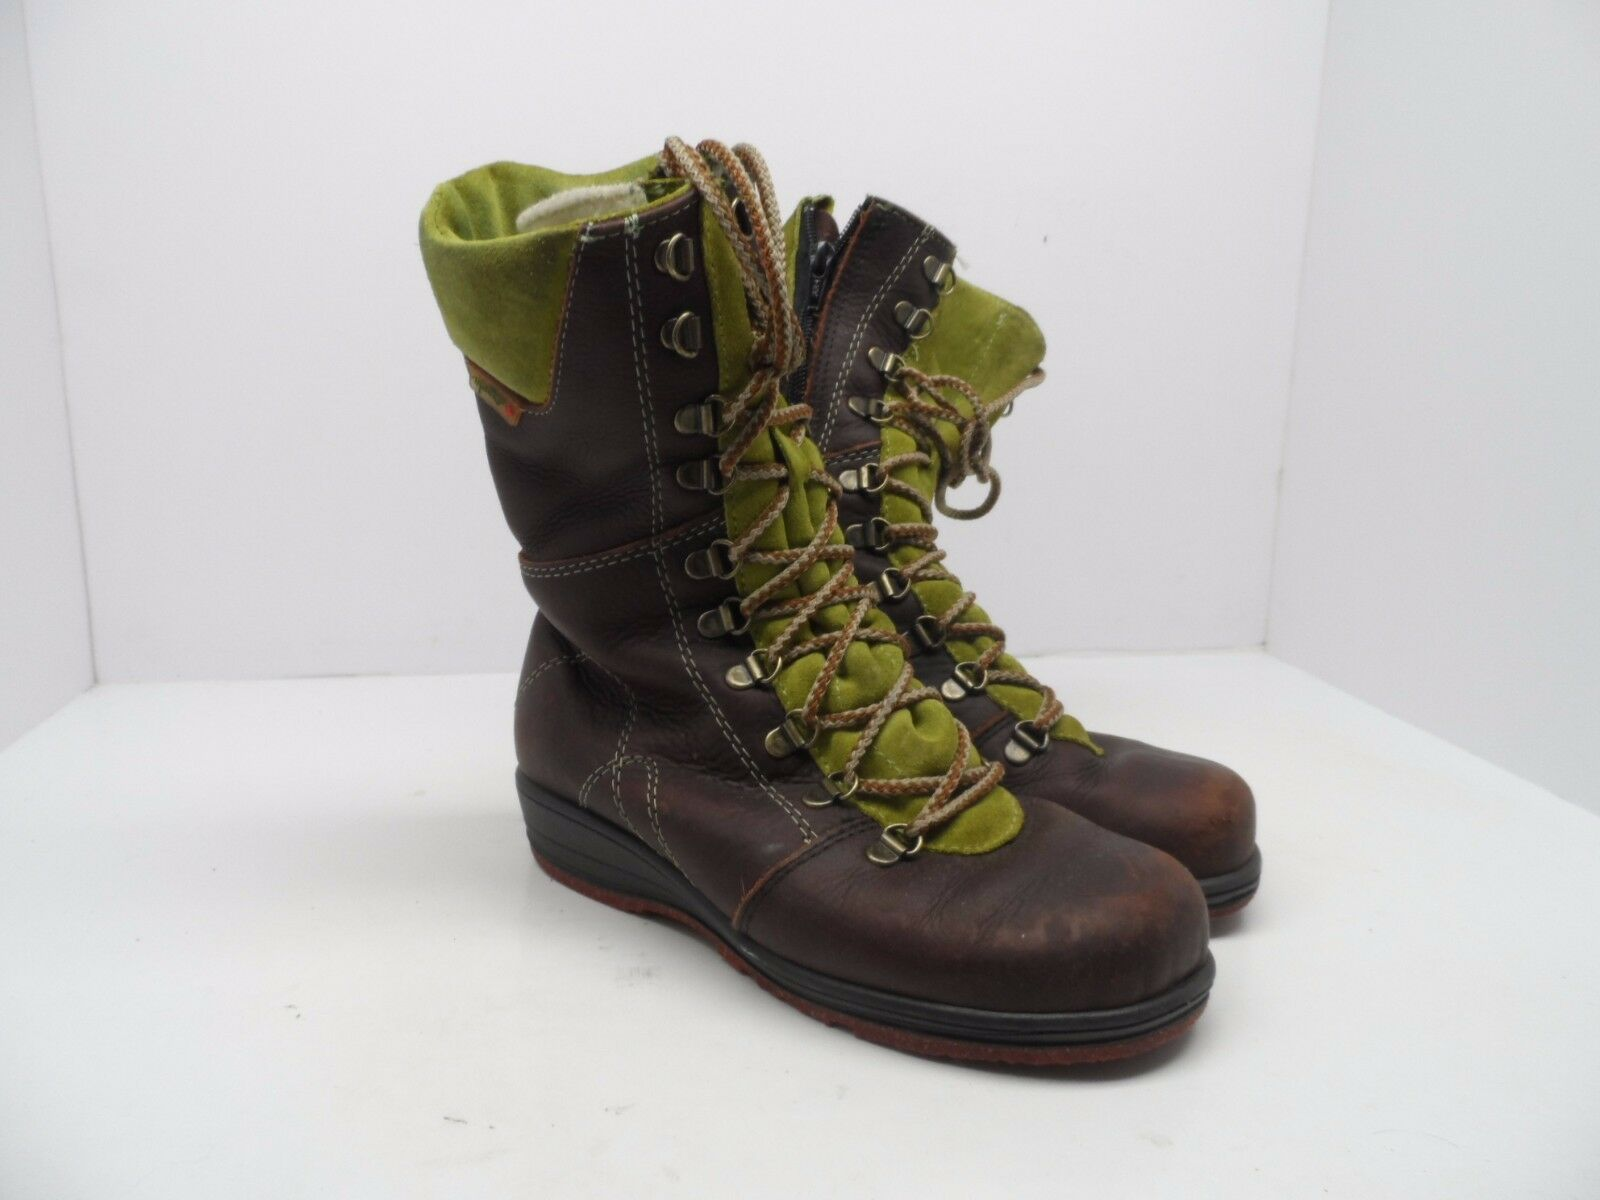 Martino Women's Banff Waterproof Boot Leather Suede Brown Green Size 6W